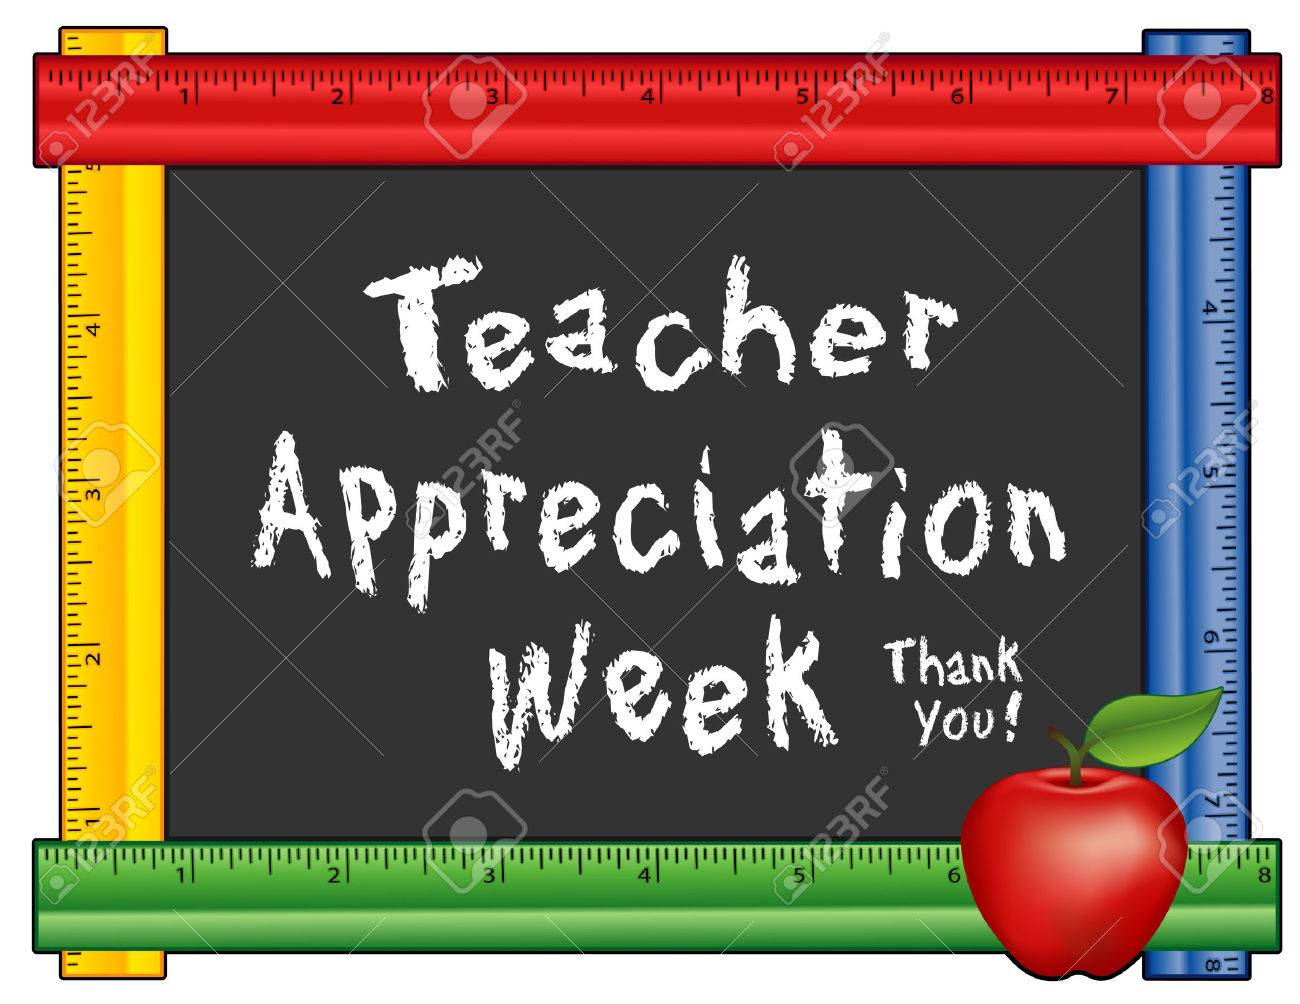 hight resolution of teacher appreciation week annual american holiday the 1st week of may red apple